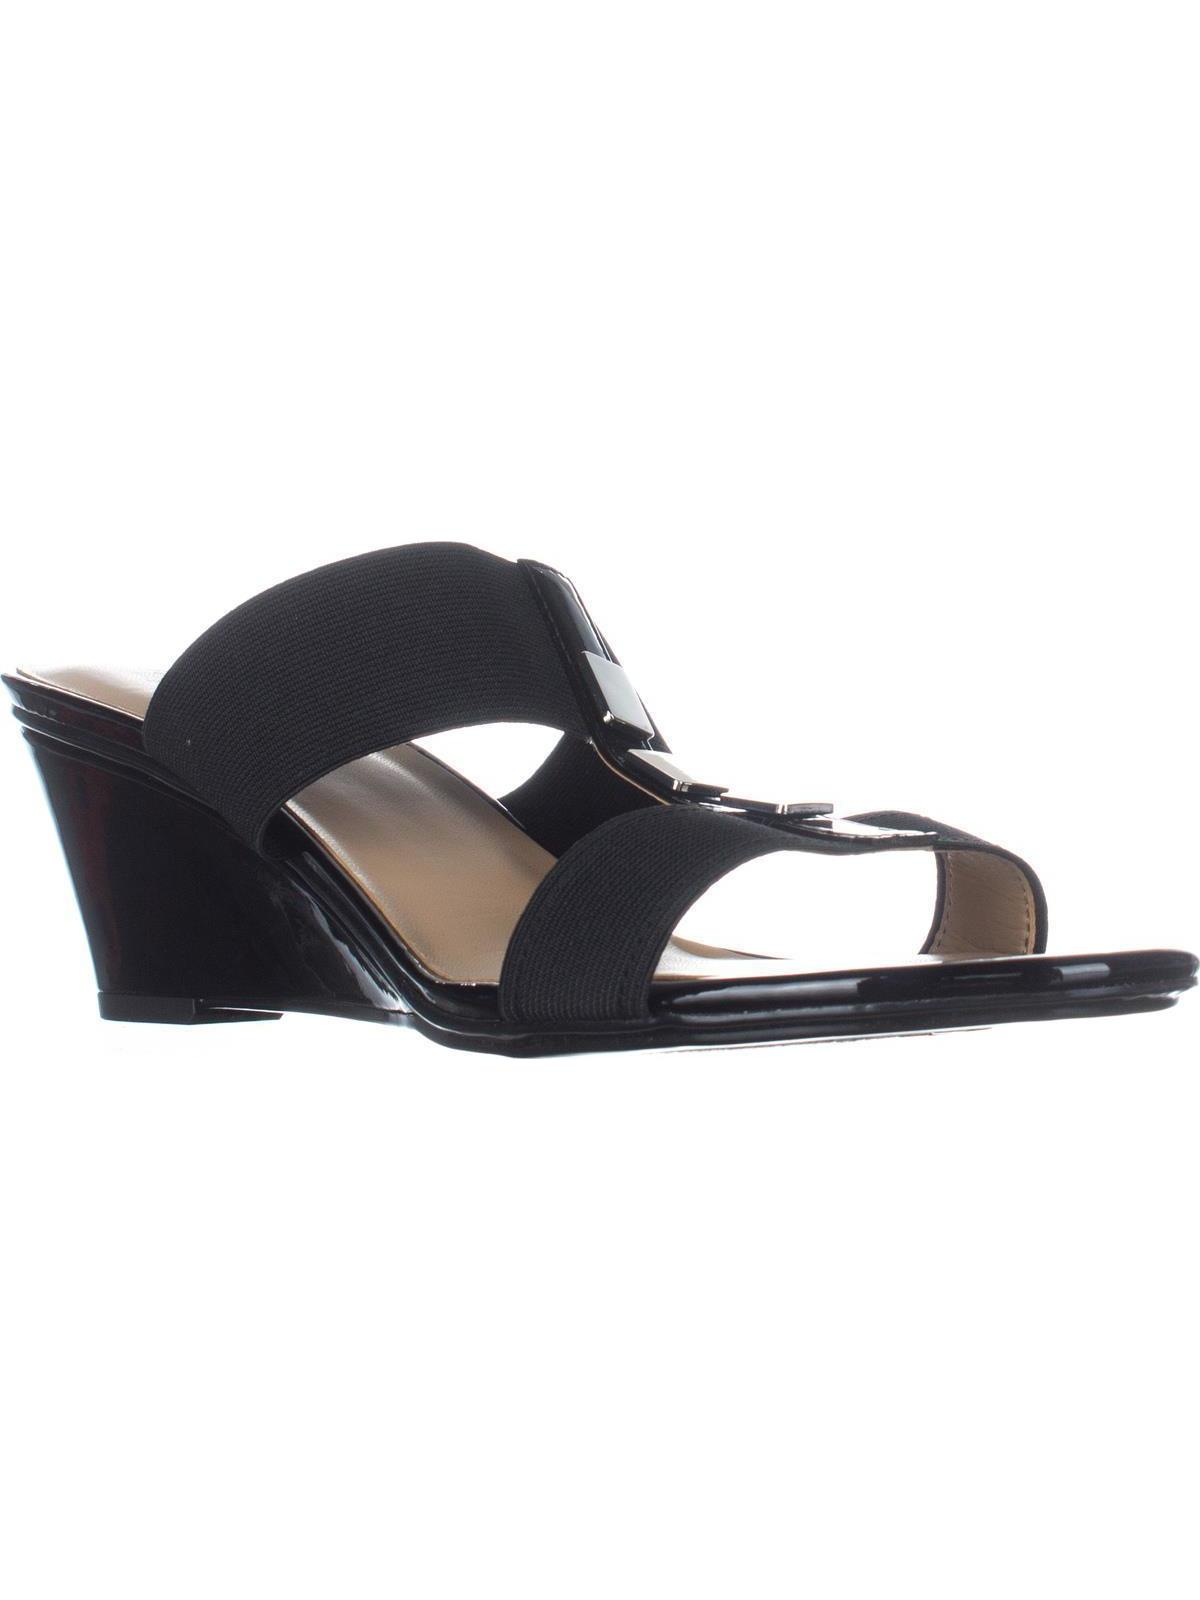 Womens Naturalizer Hayden T-Strap Wedge Sandals, Black by Naturalizer